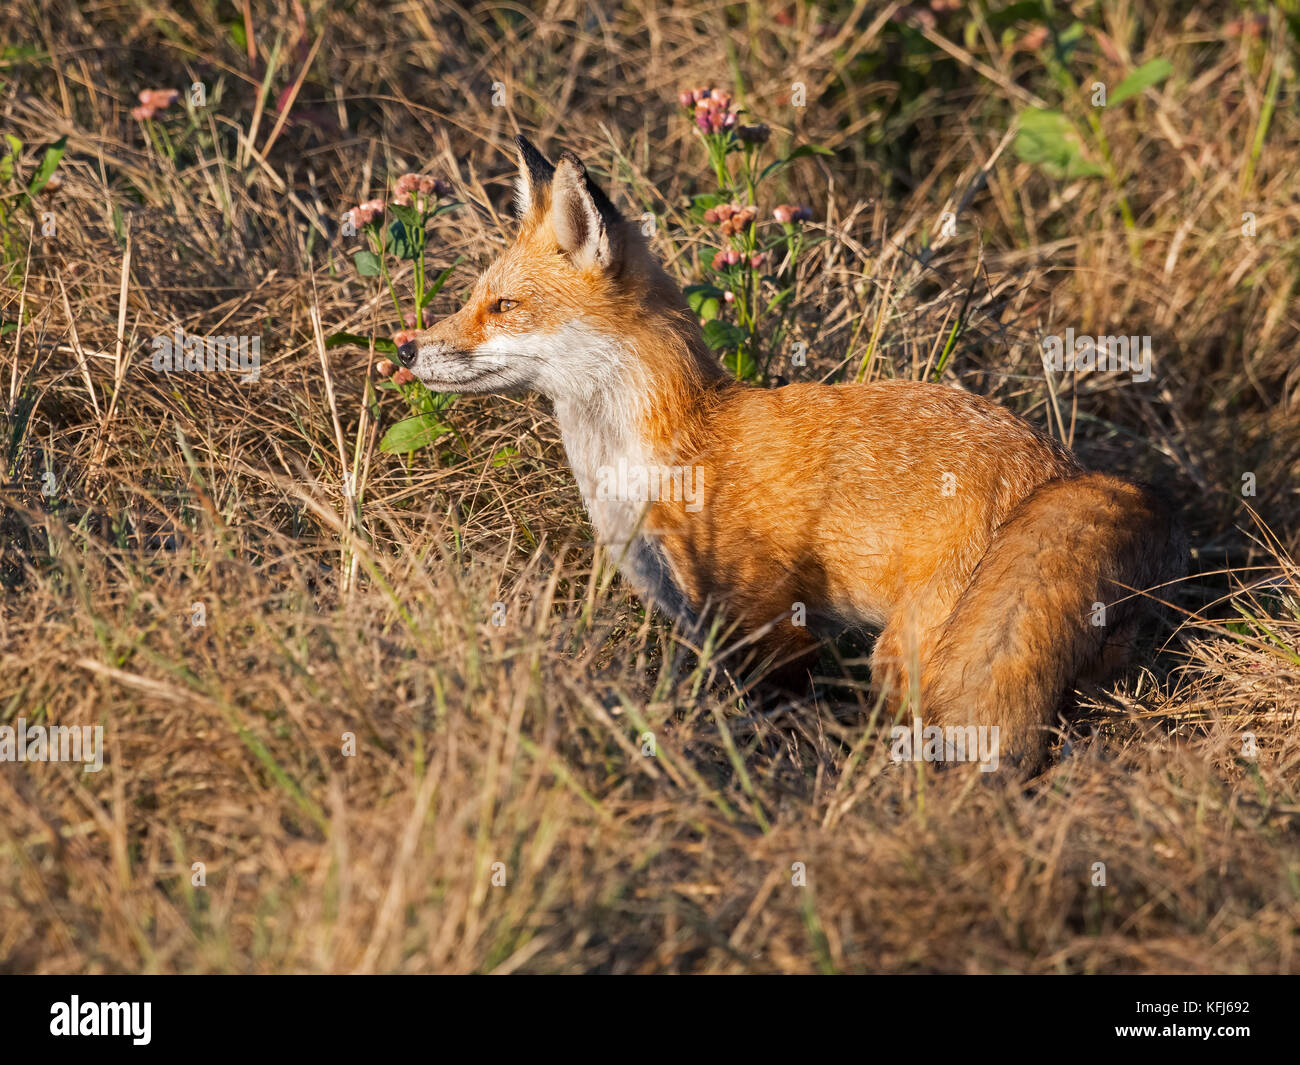 Red Fox - Stock Image